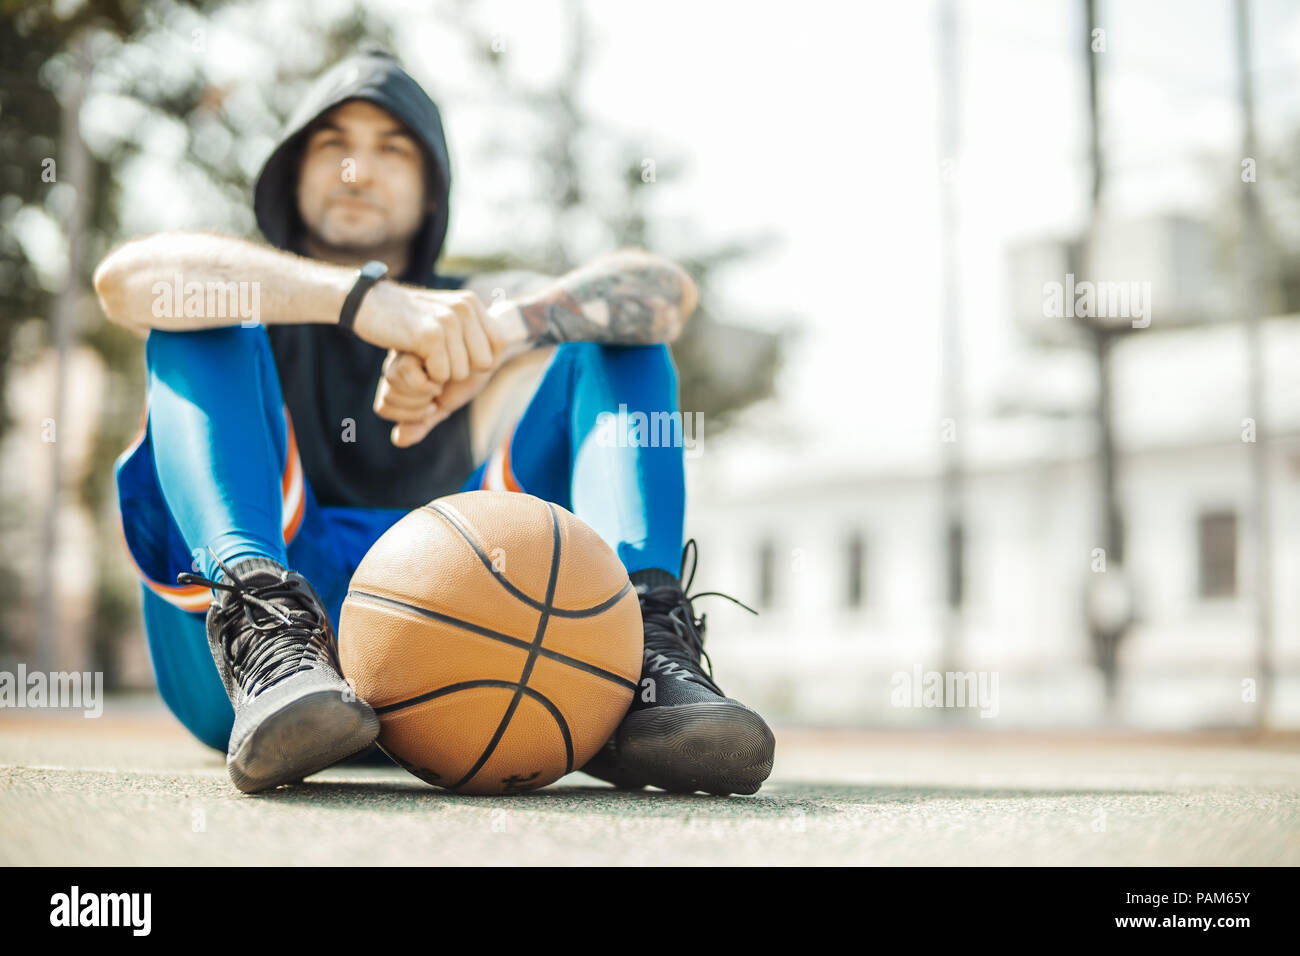 Close up of attractive man sitting on the court. Ball is on focus and foreground, man is on background and blurred. - Stock Image